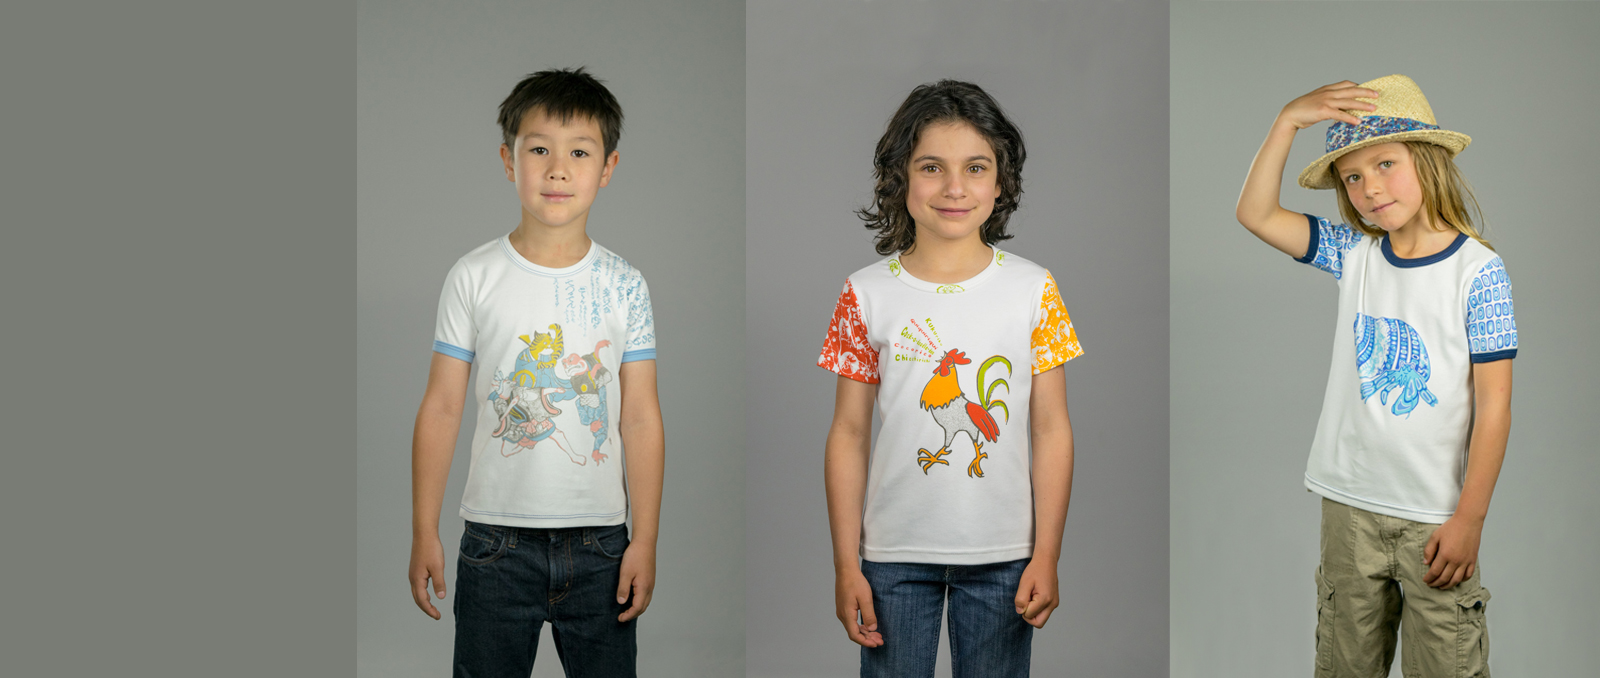 Kids t-shirts by OneTribe